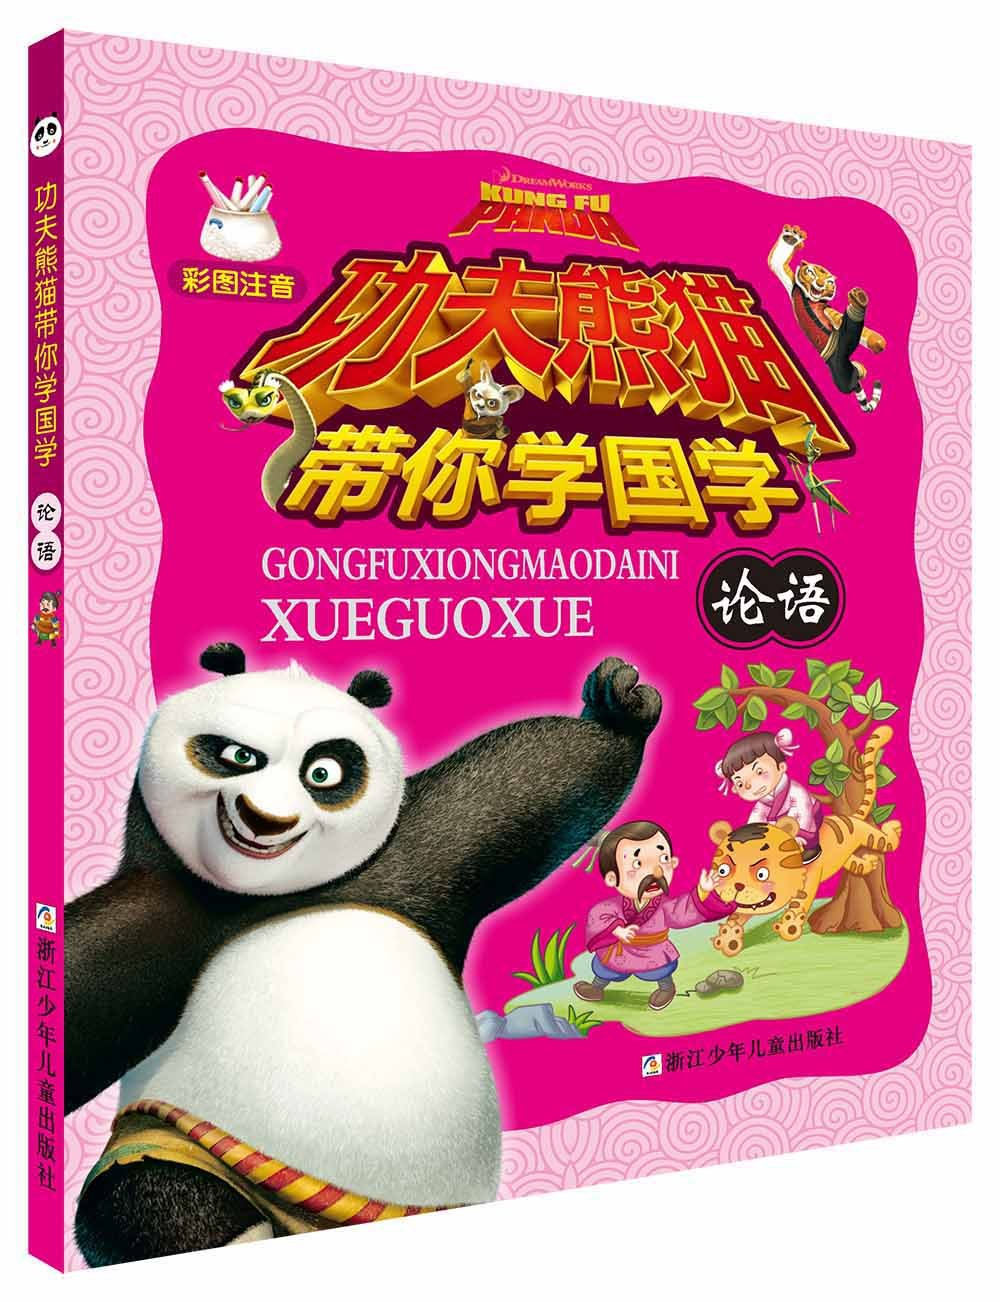 Kung Fu Panda with you to learn Chinese culture: The Analects of Confucius with pin yin and picturesKung Fu Panda with you to learn Chinese culture: The Analects of Confucius with pin yin and pictures